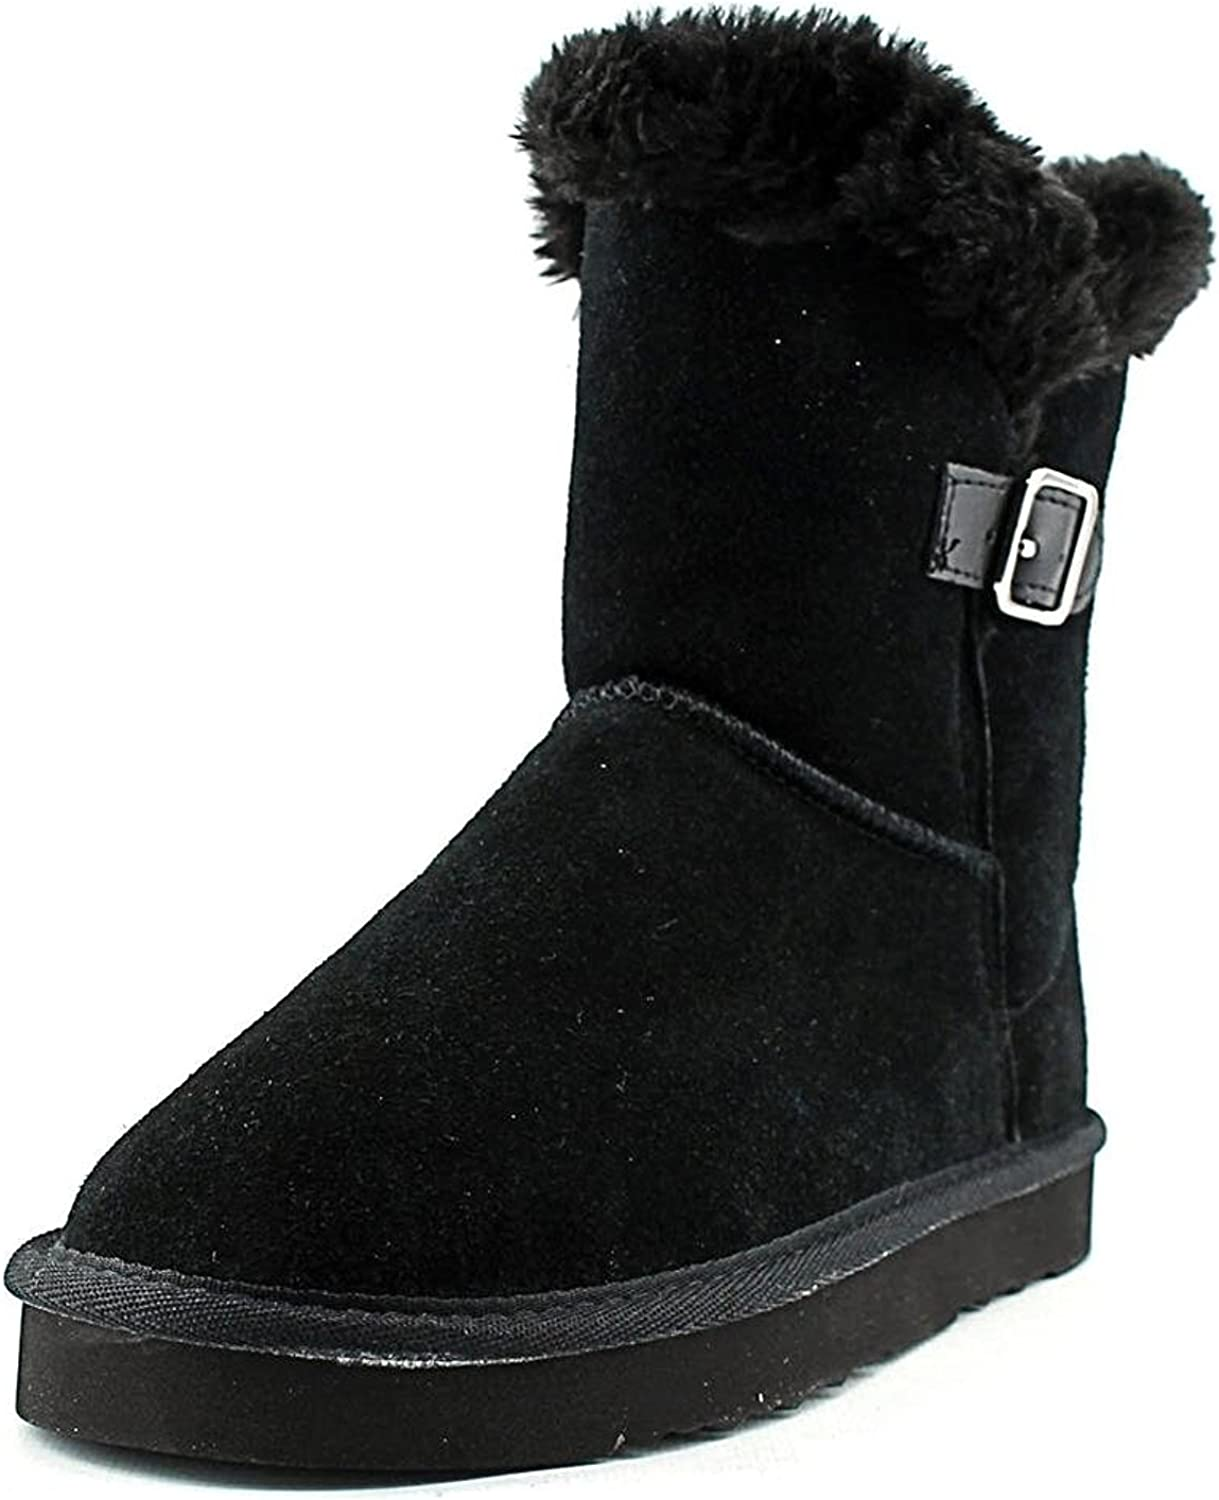 Style & Co. Womens Tiny 2 Suede Closed Toe Mid-Calf Cold, Black, Size 6.0